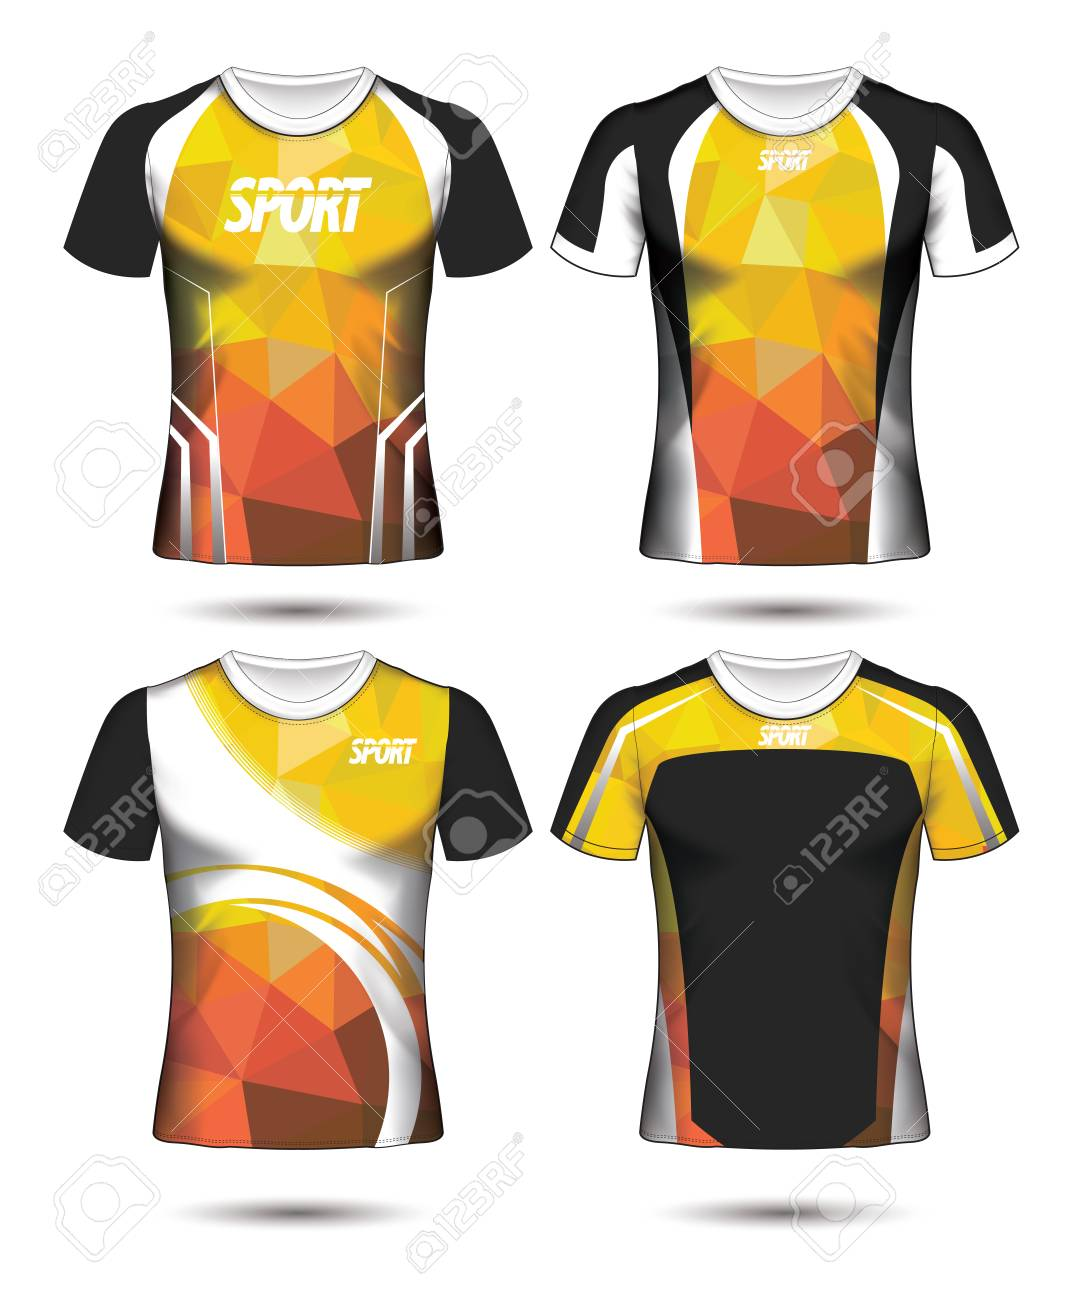 52203da583c Set of Soccer sport t-shirt layout design poly template and polo shirt  vector illustration